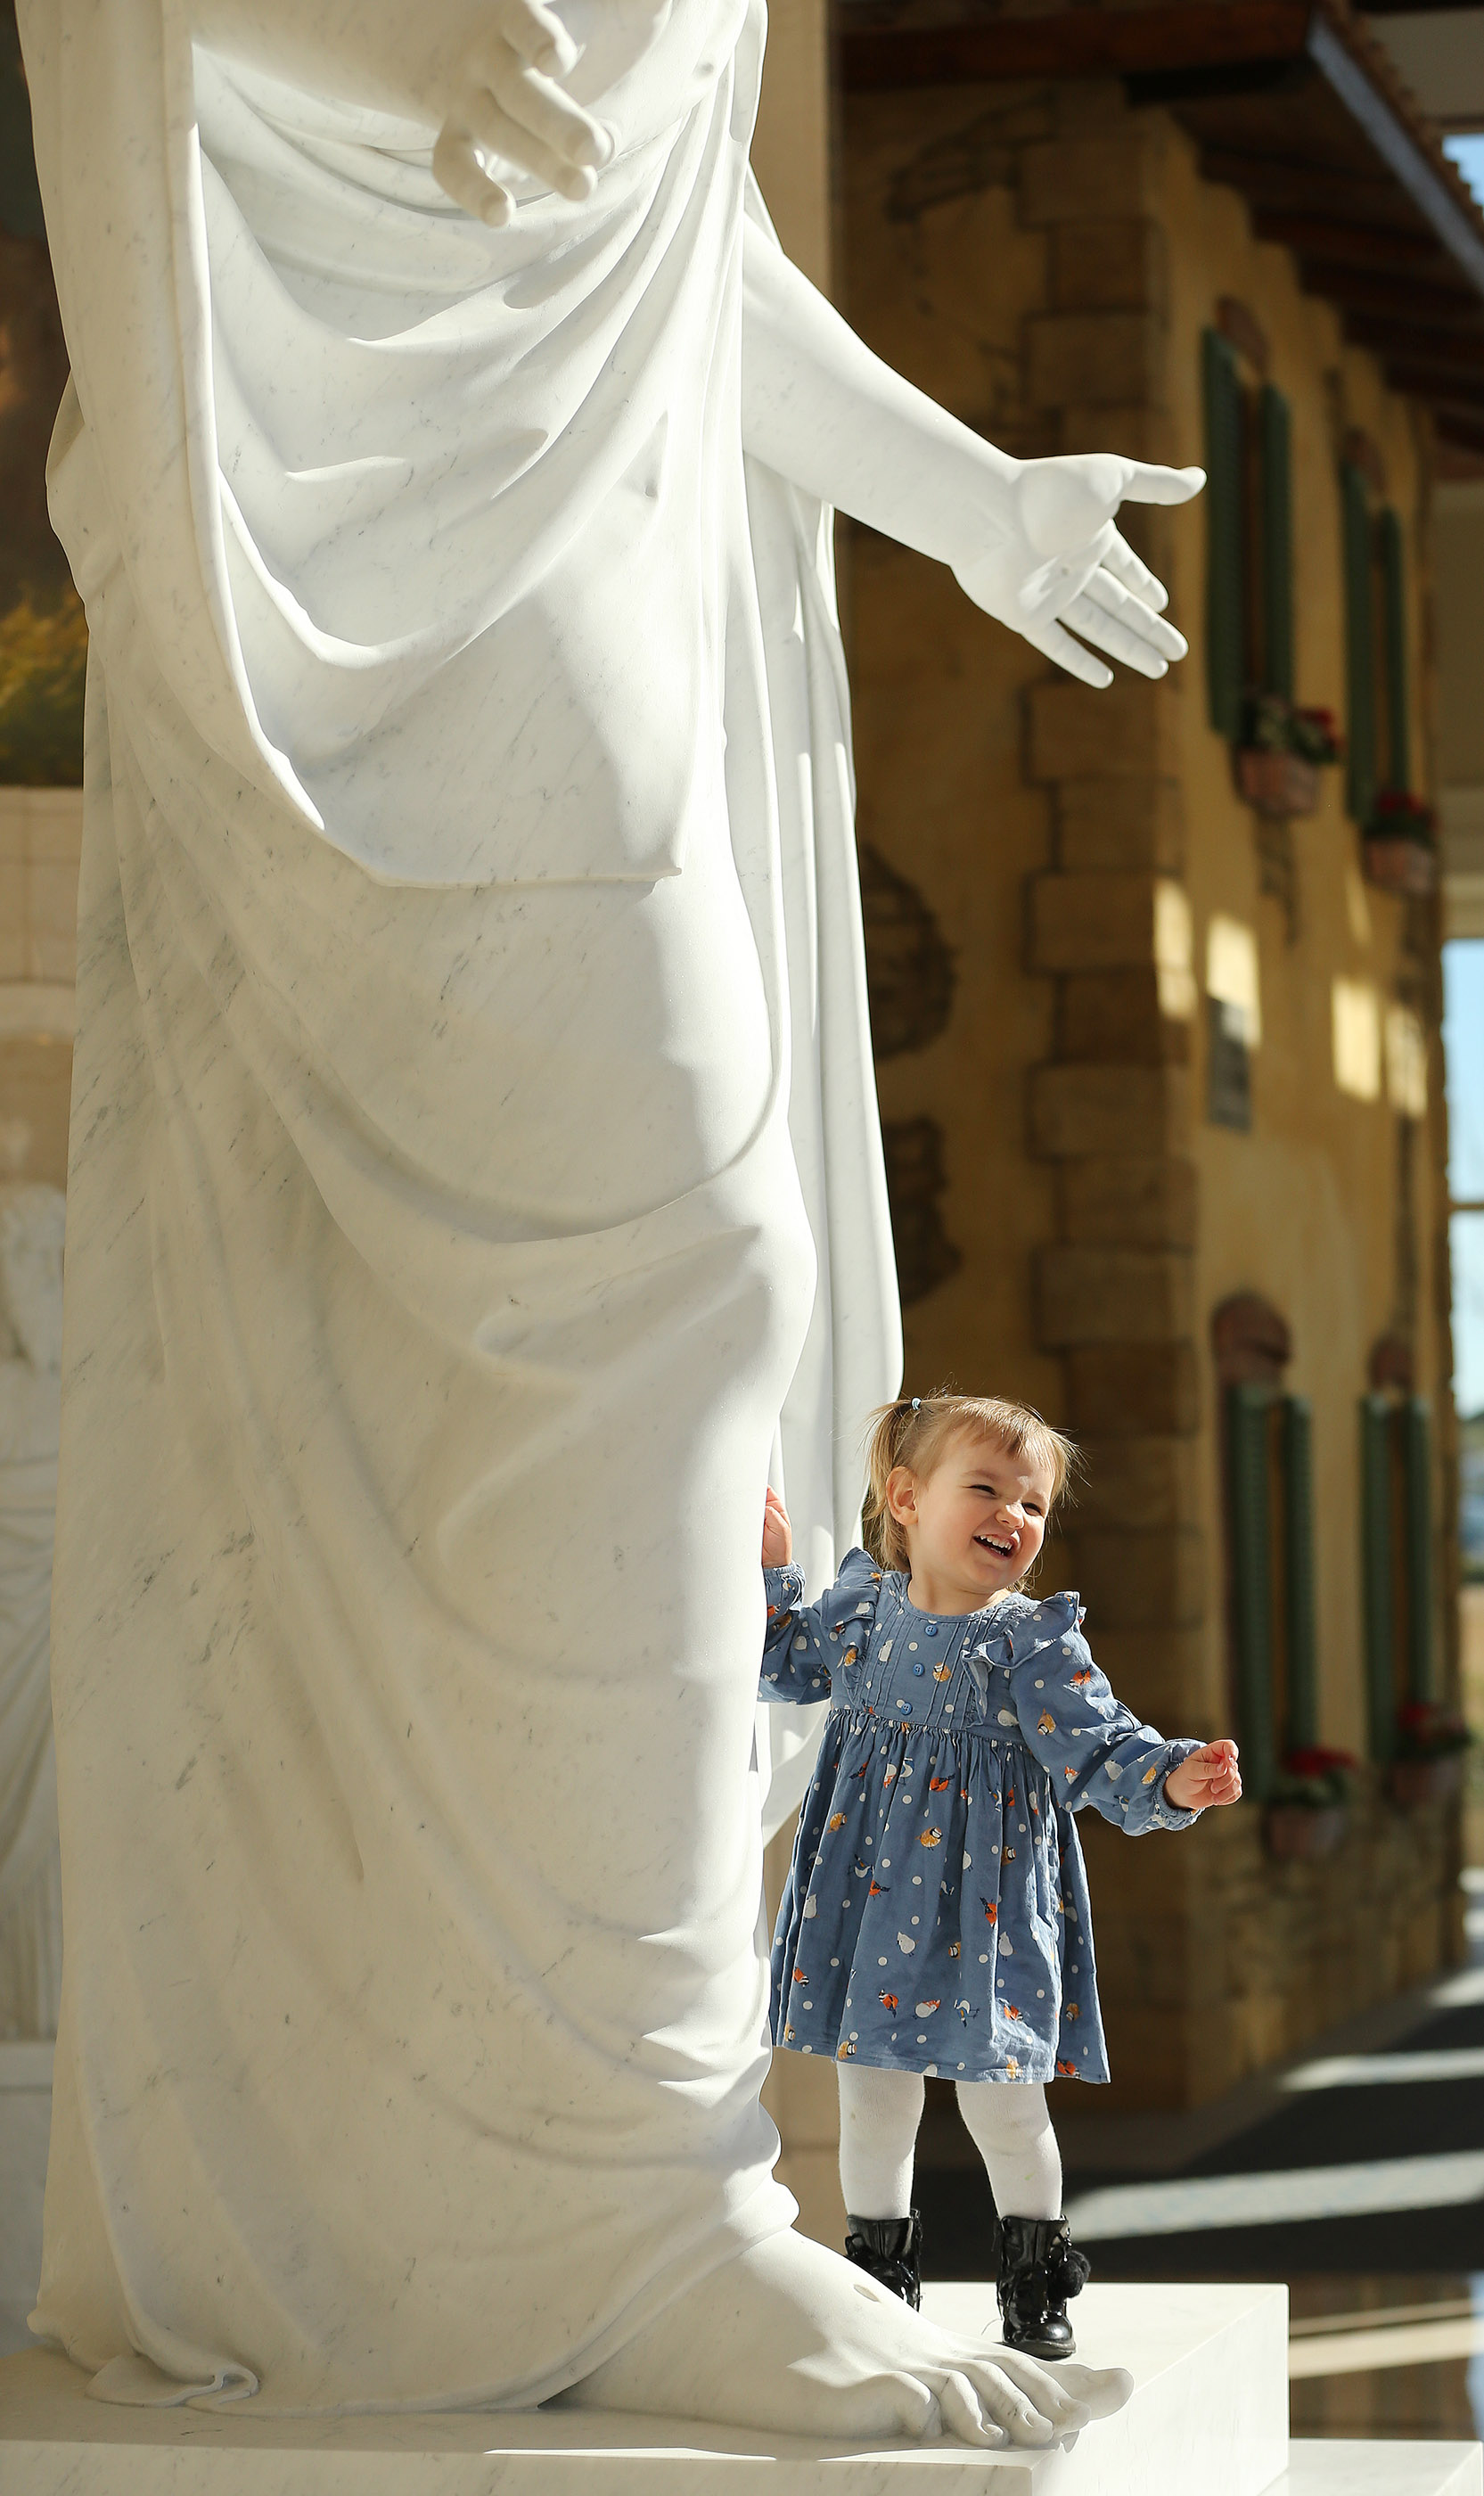 Arianna Giovita stands by the Christus statue in the Rome Italy Temple Visitors' Center in Rome on Tuesday, March 12, 2019.